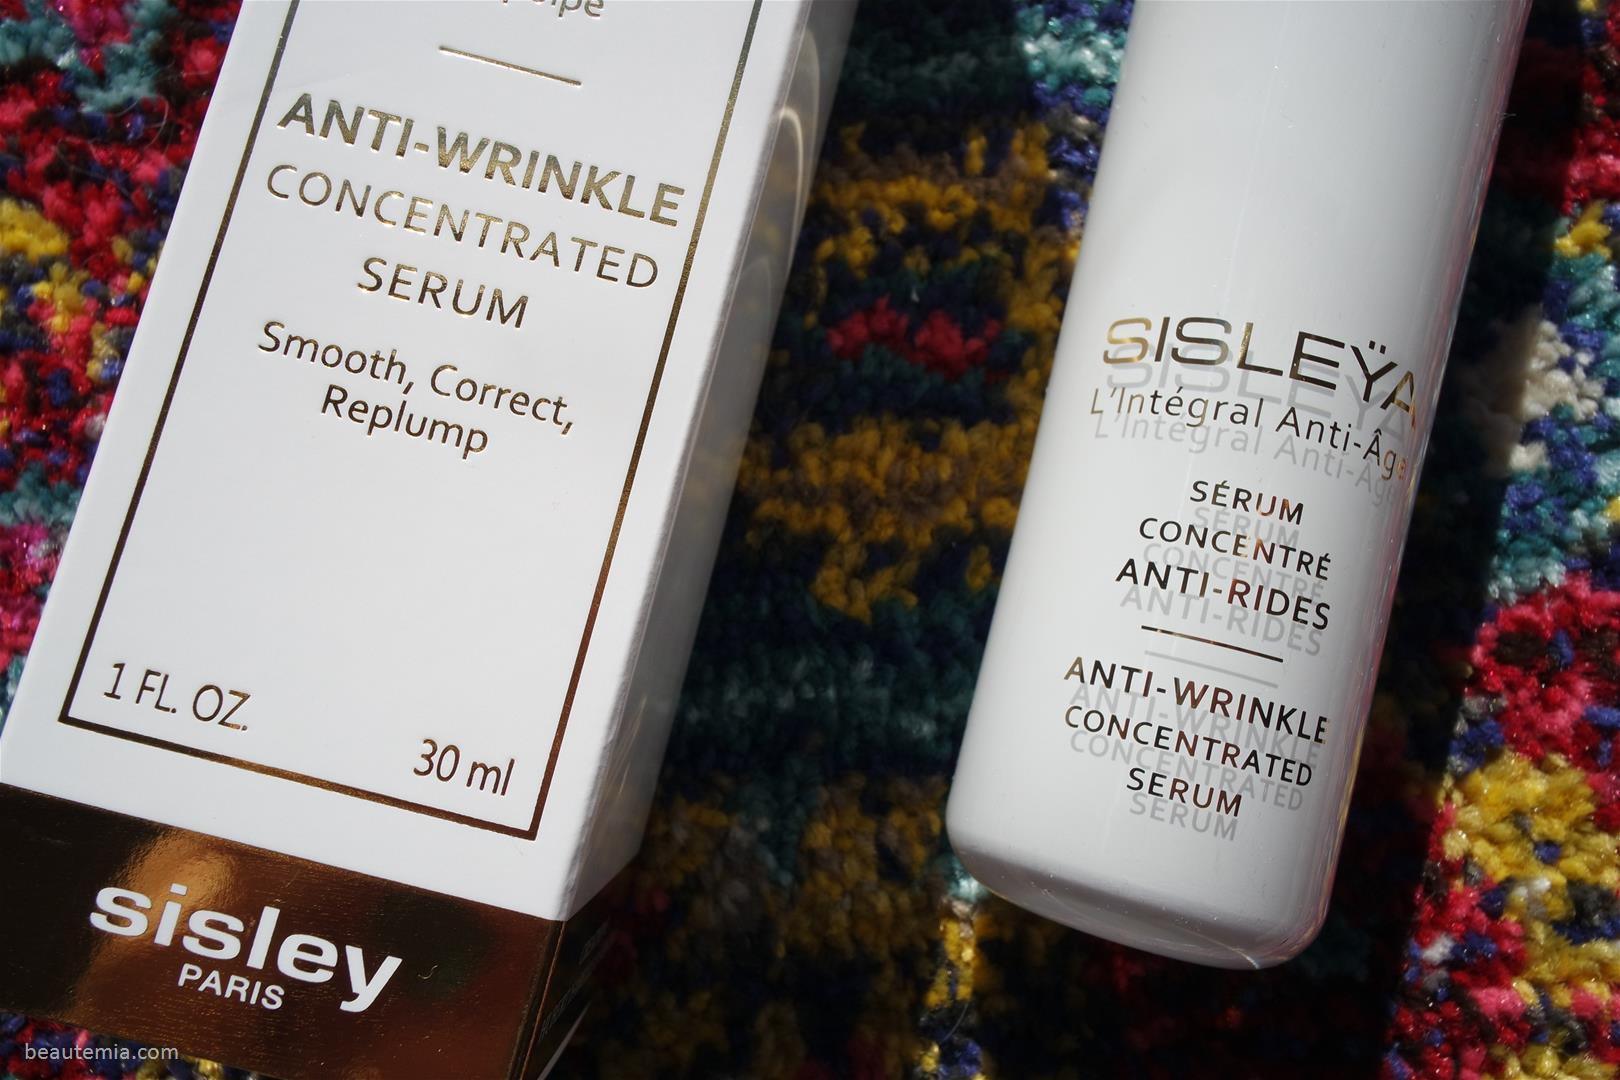 Sisley Sisleÿa l'Intégral Anti- ge Anti-Wrinkle Concentrated Serum, Sisley Supremÿa Eyes at Night, Sisley Supremÿa Yeux La Nuit, Sisley supremya  Eye serum, Sisley Sisleyouth, Sisley Sisleÿa L'Integral Anti-Age Extra-Rich cream, Sisley Sisleya L'integral Anti-Age Firming Concentrated Serum, Sisley Sisleÿa L'Integral Anti-Age cream, Sisley Sisleÿa L'Integral Eye & Lip Contour Cream, Sisley Sisleÿa-Elixir, Sisley Botanical D-Tox, sisley skicnare, best intensive treatment, PMS skincare, hangover skincare, Sisley detox treatment, Sisley phyto blanc treatment, Sisley supremya baume, Sisley supremya at night, Sisley supremya la nuit, La Prairie cellular power infusion, La Mer firming mask, sisley black rose cream mask, Sisley black rose oil, Sisley black rose skin infusion cream, Sisley vs La Mer, Sisley vs La Prairie, luxury skincare blogger, best skincare blogger & La Prairie vs La Mer